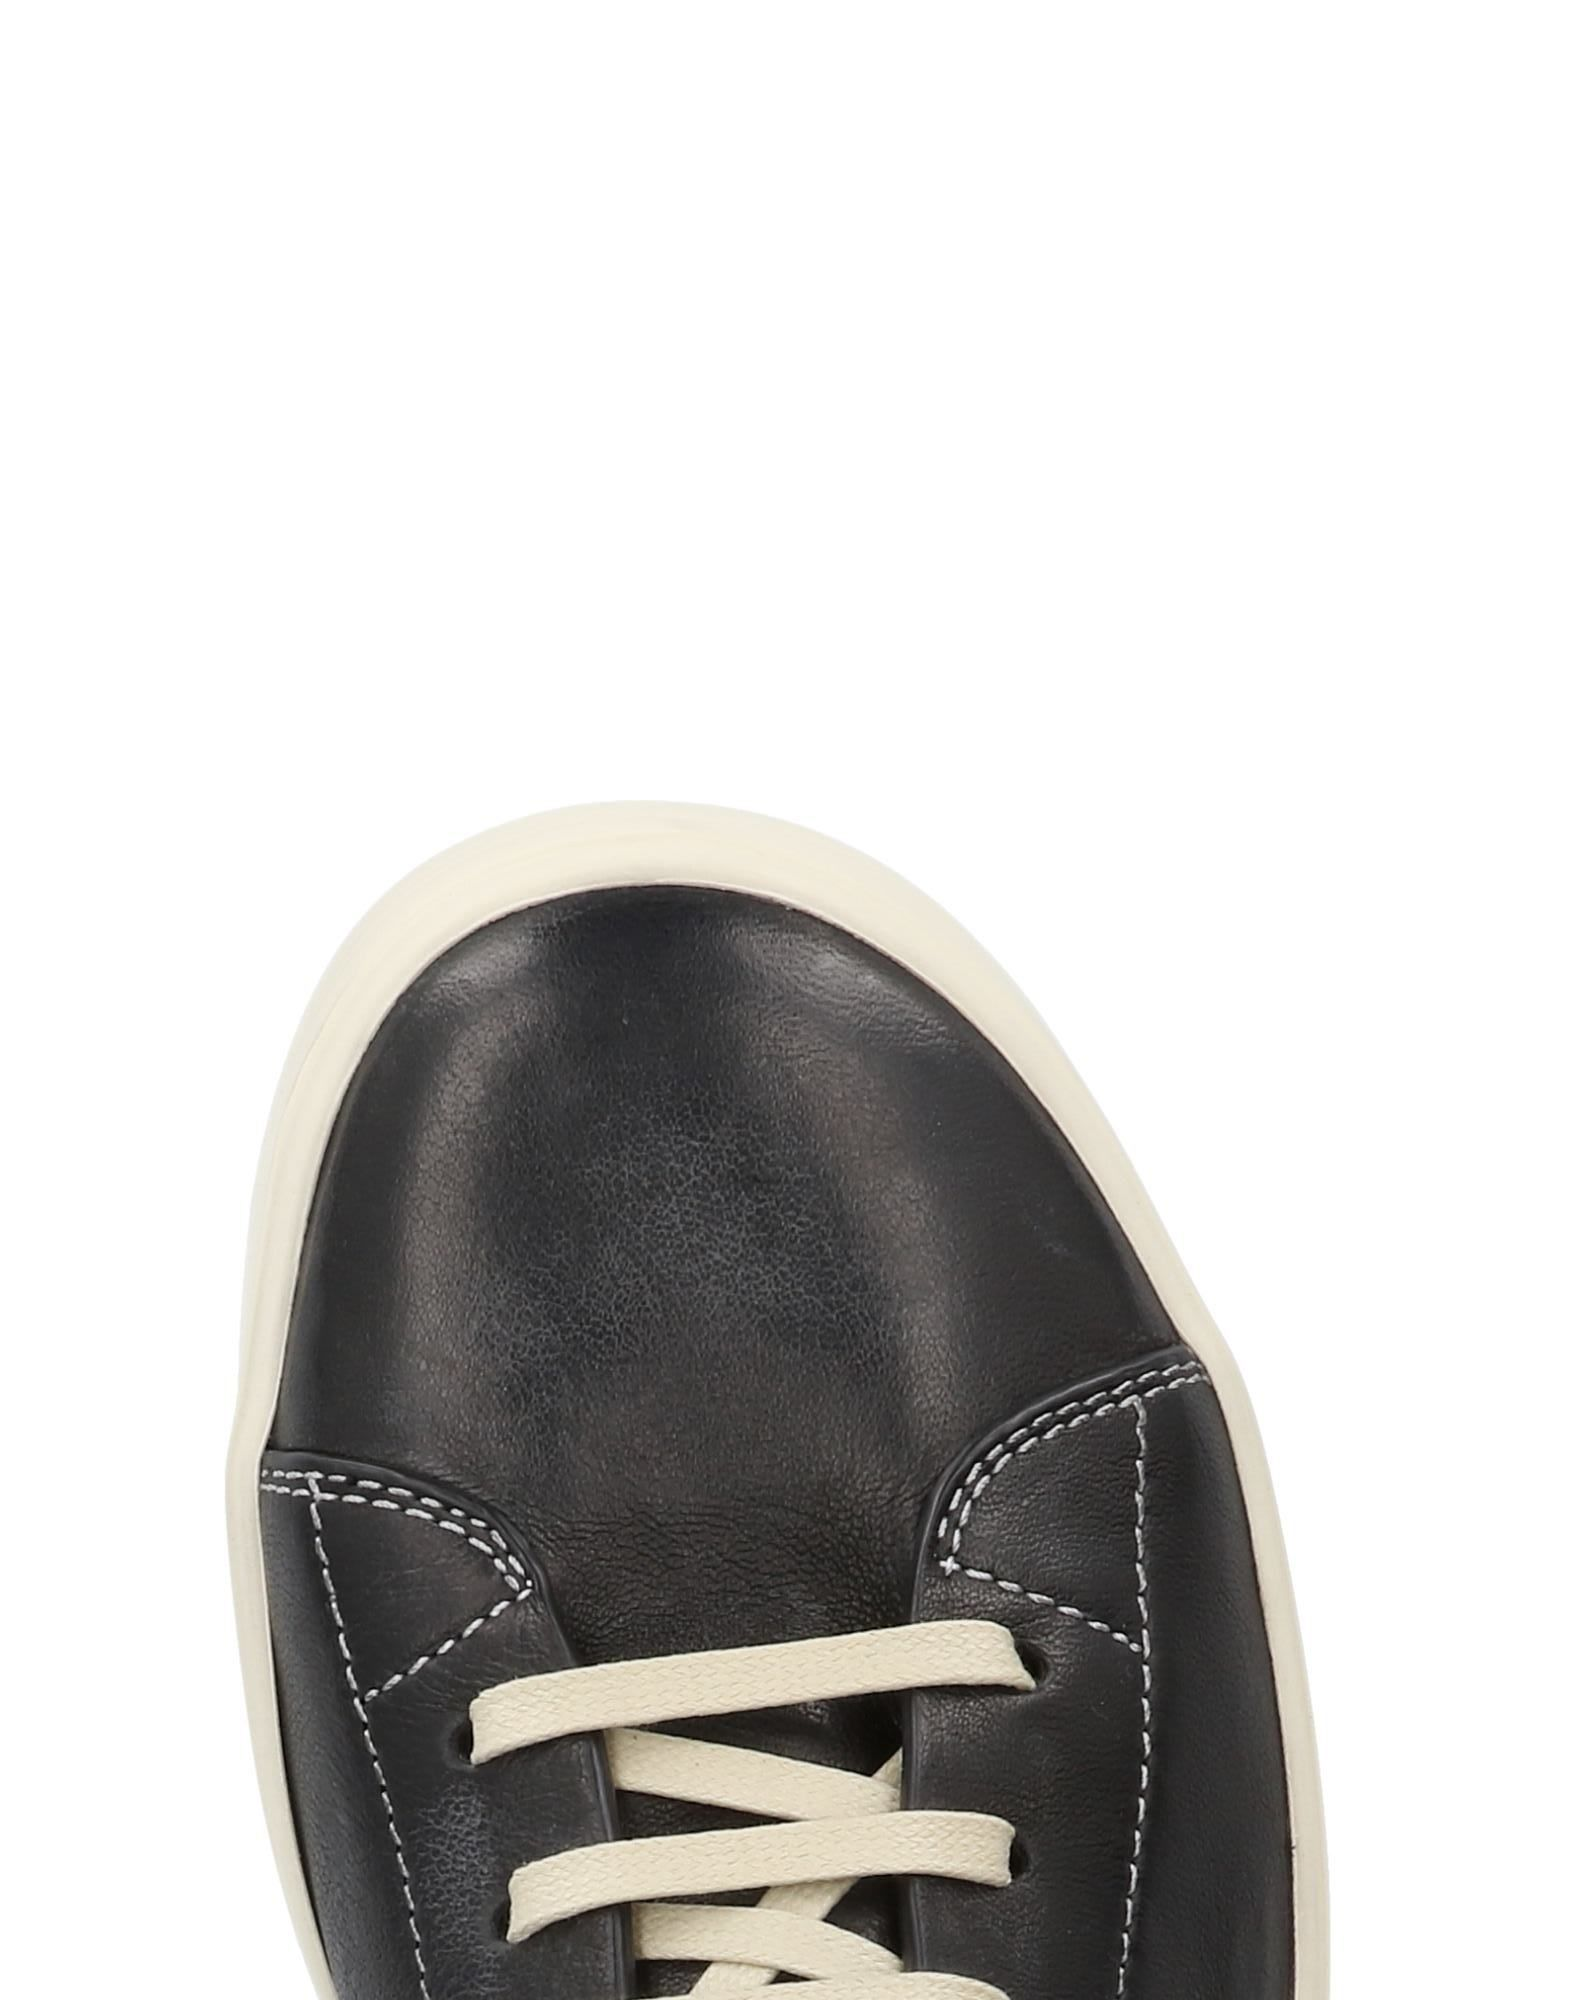 Rick Rick Rick Owens Sneakers - Men Rick Owens Sneakers online on  Canada - 11462180UC 63548c